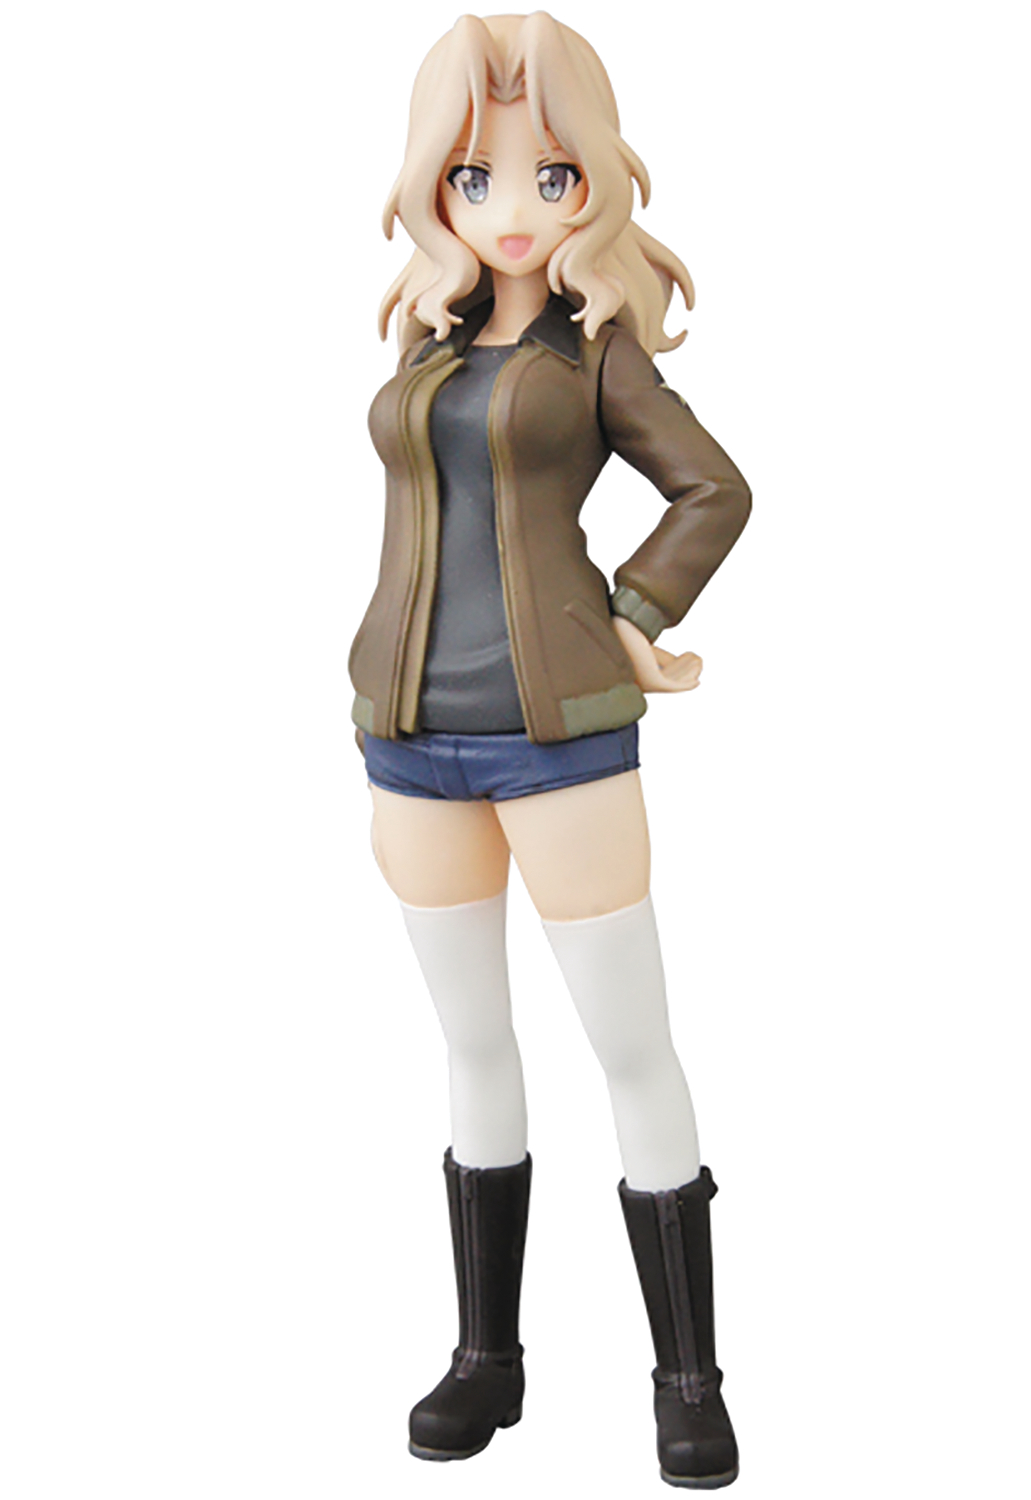 GIRLS UND PANZER FINAL CHAPTER SER 2 KAY UDF FIG